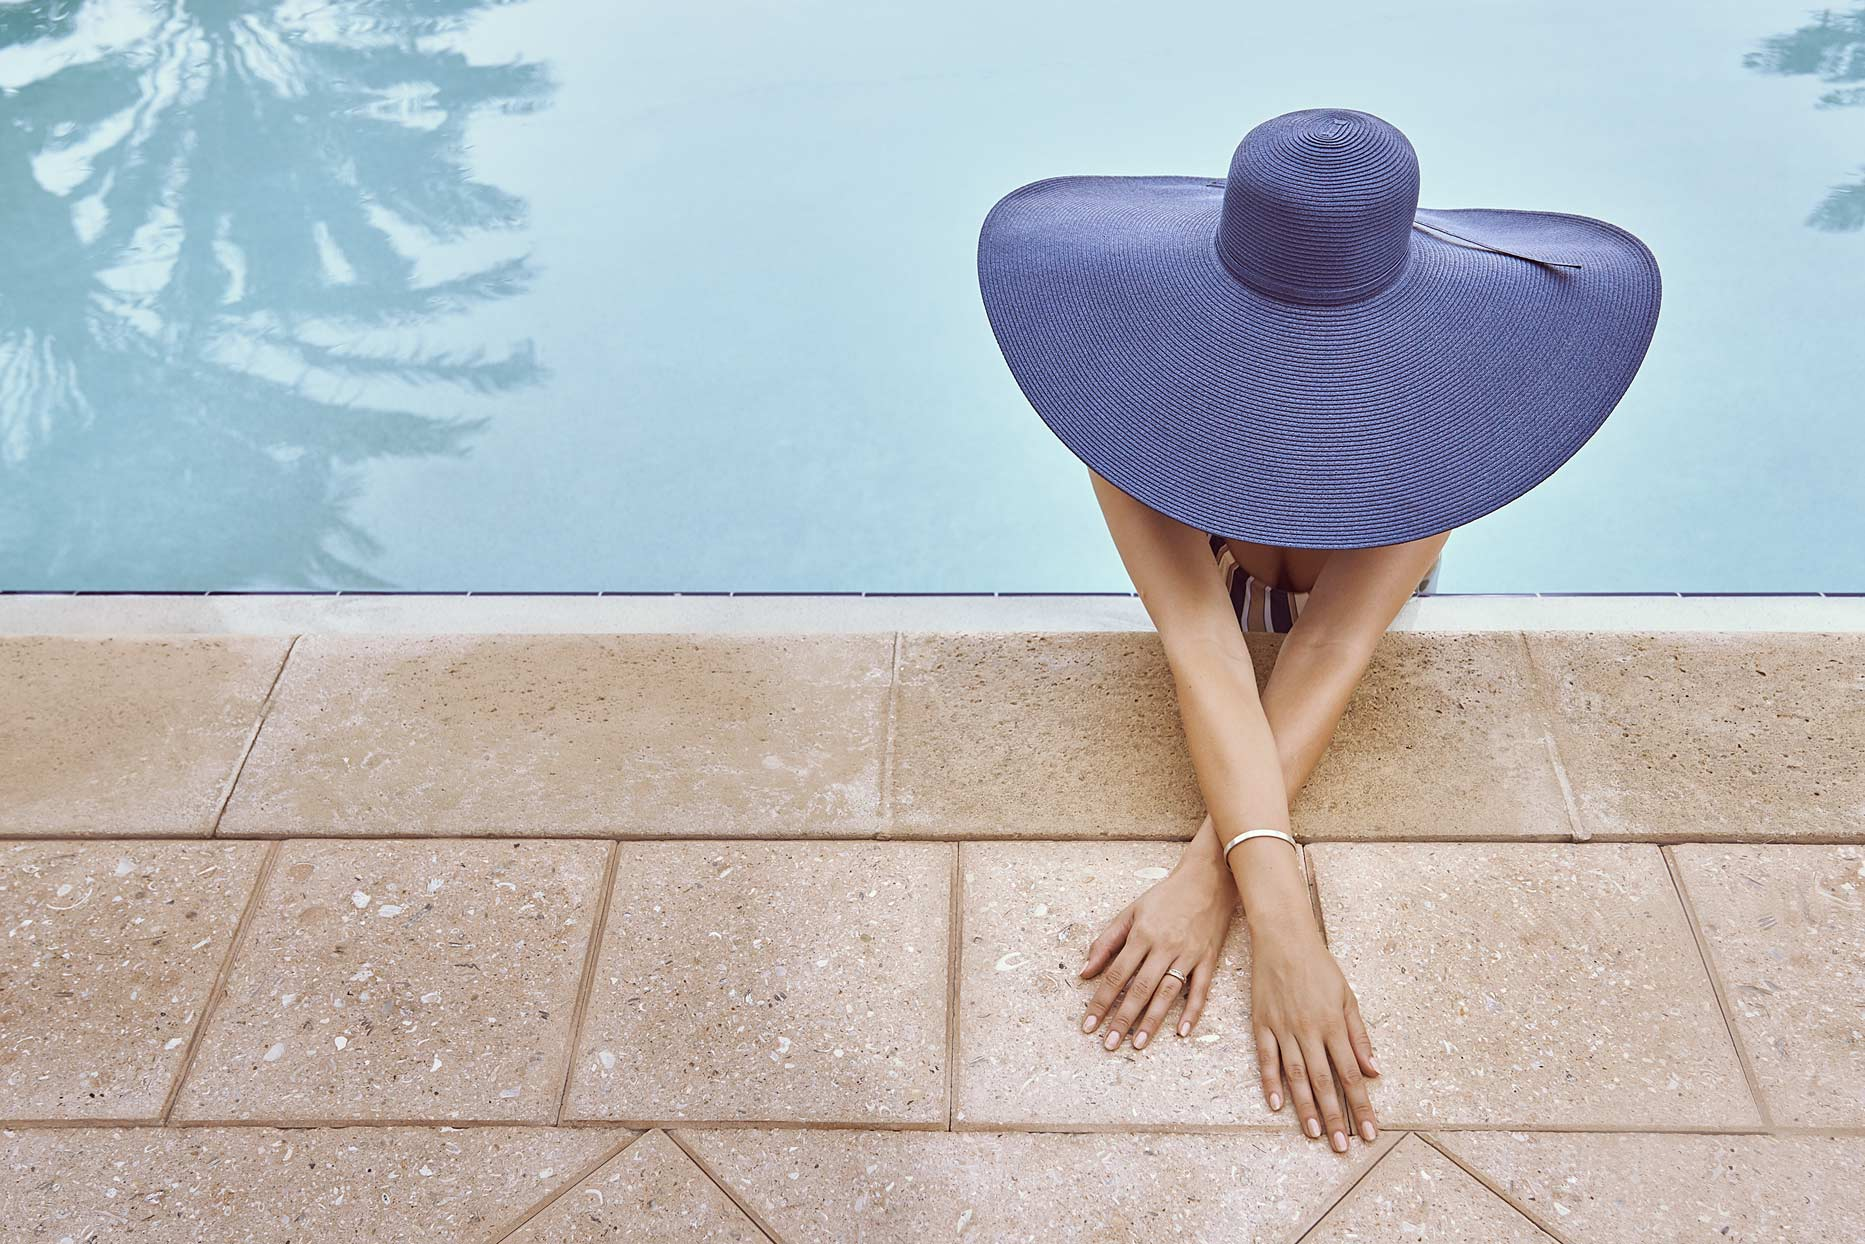 WAO_Cabana_Pool_Hat_4_5.28.19_2711_CRP-FINAL-1244_WEB.jpg